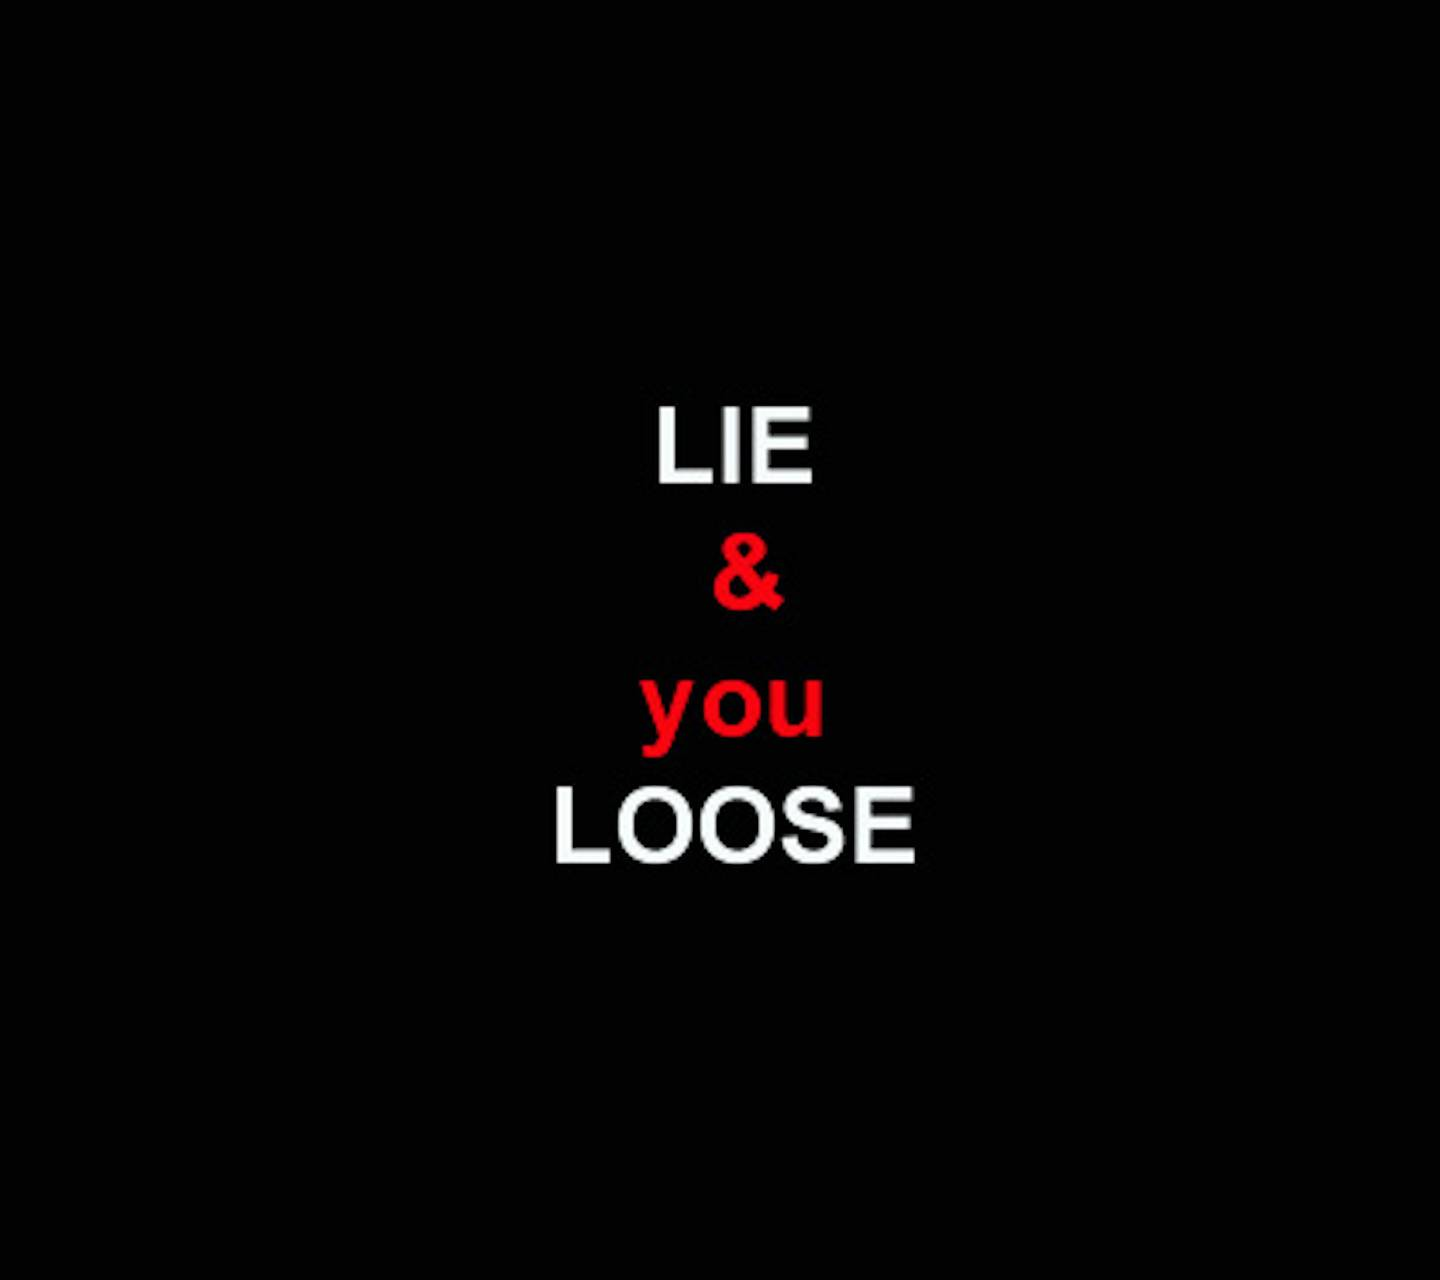 Lie and Loose